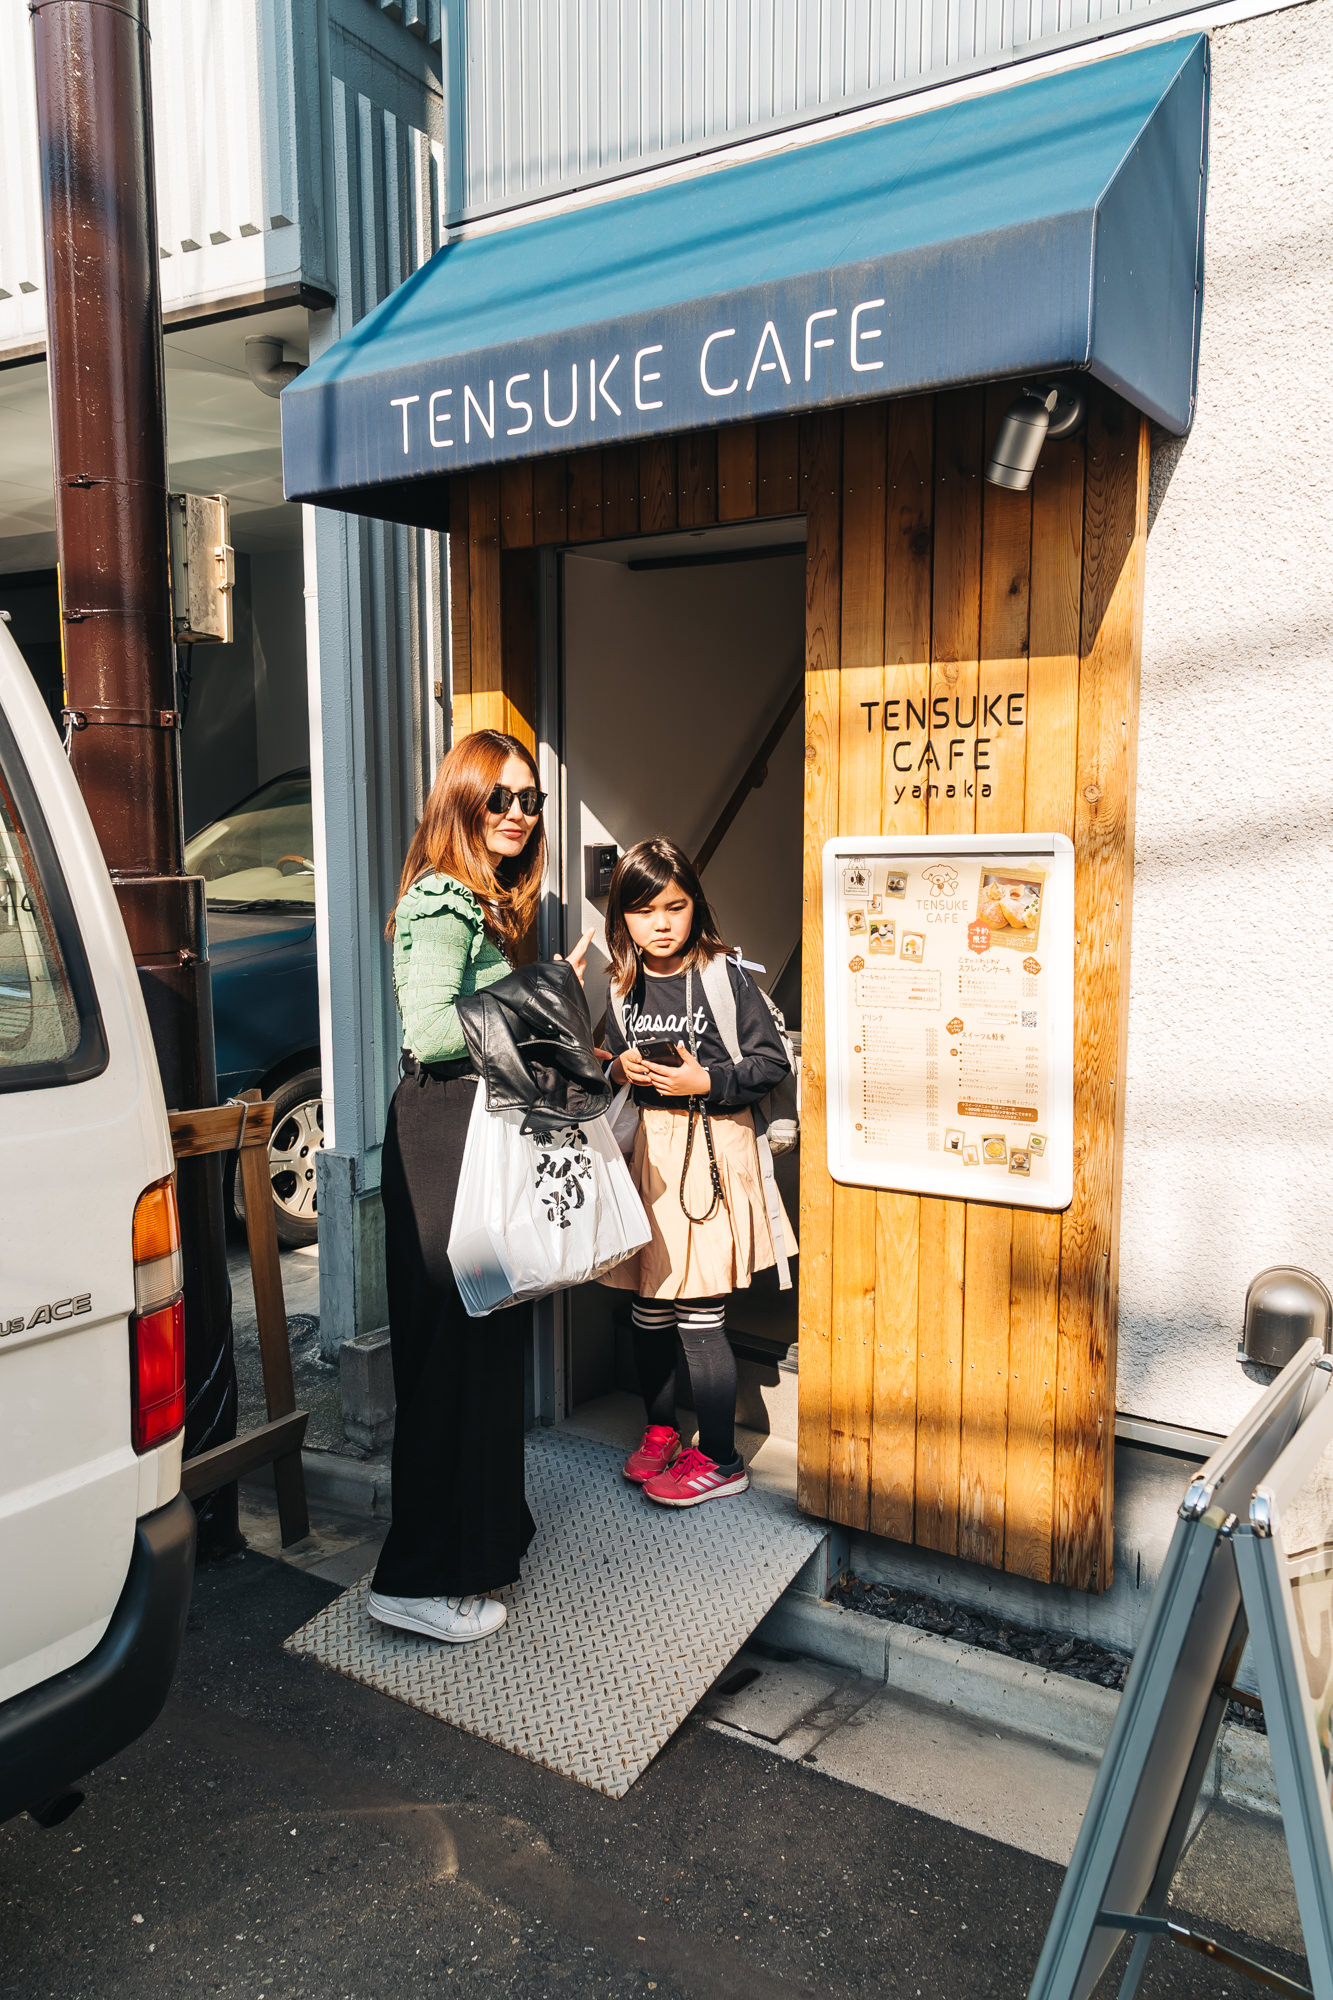 Tensuke Cafe at the end of Yanaka Ginza street